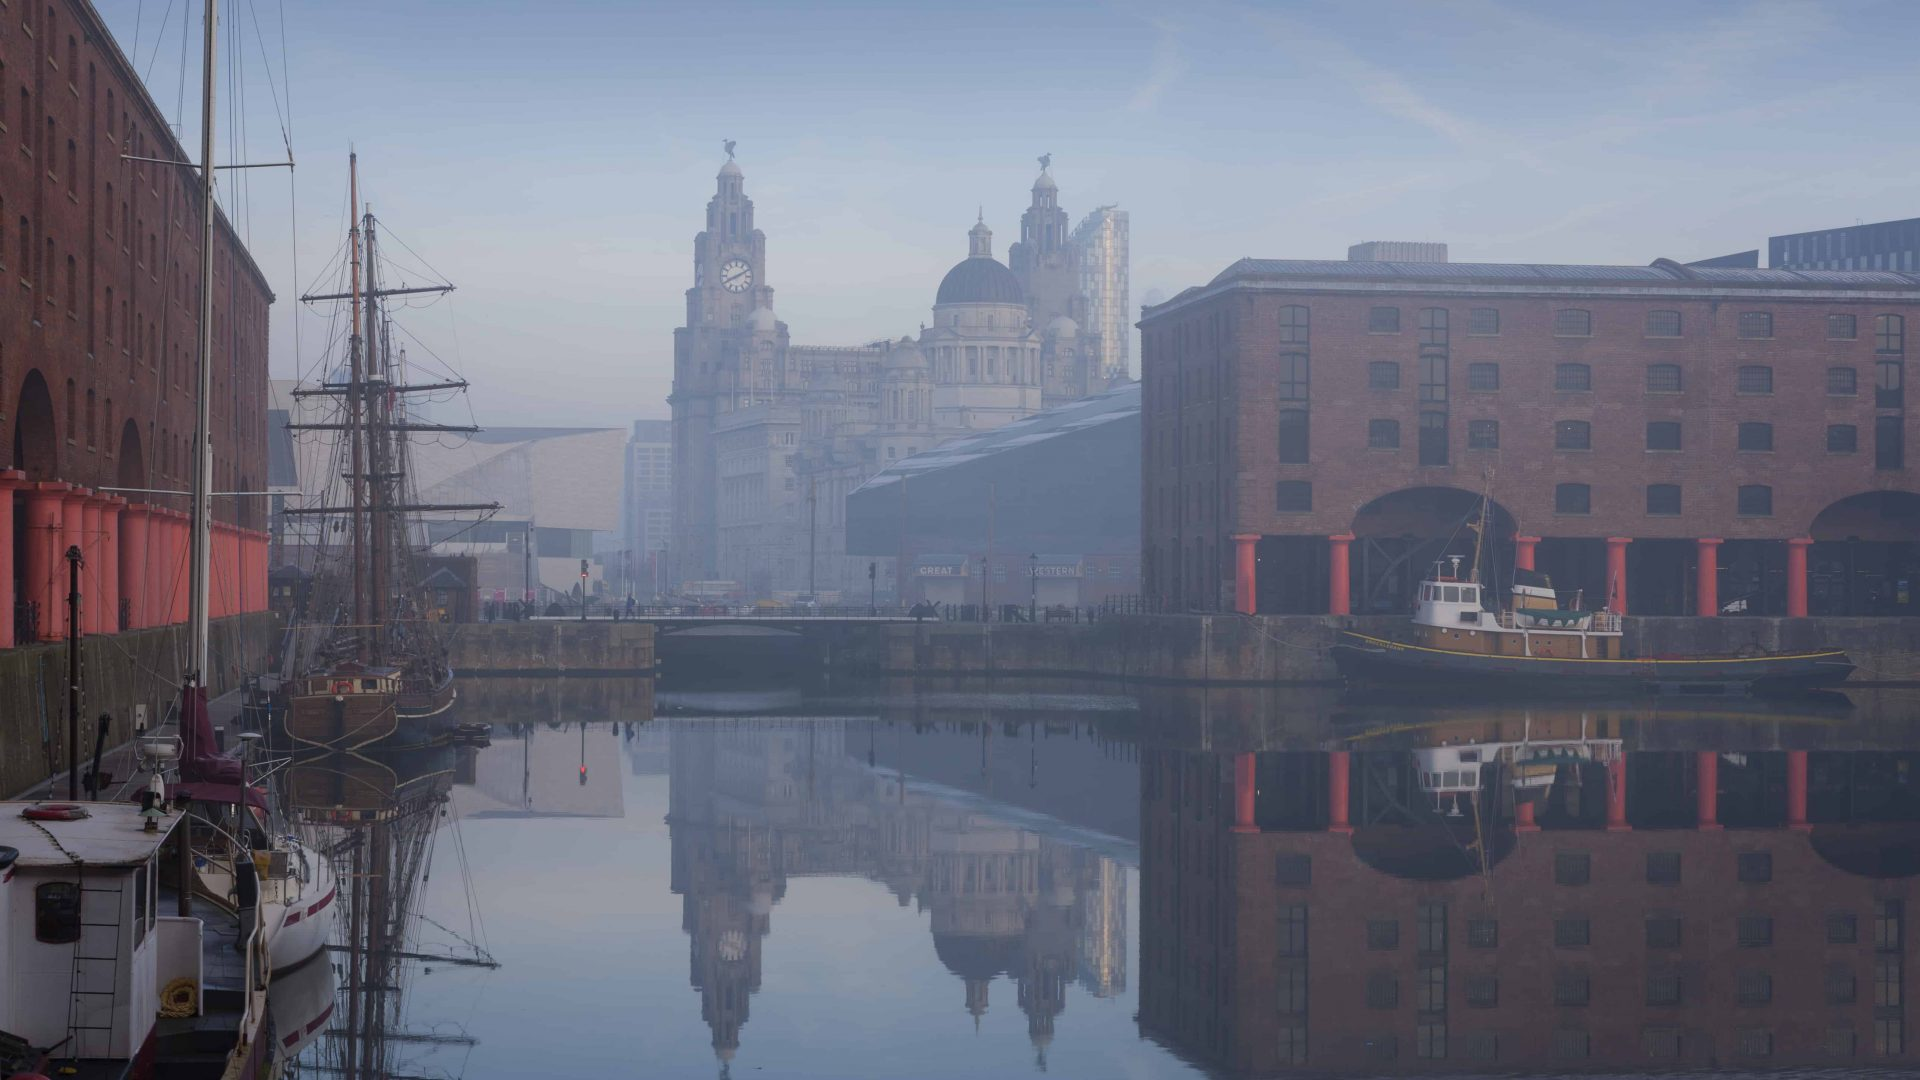 Maritime Albert Dock on Liverpool waterfront with the Three Graces historic buildings. The Liverpool world heritage site. Port of Liverpool building, the Cunard Building and the Liver building. A historic ship moored. Mist rising from the water.